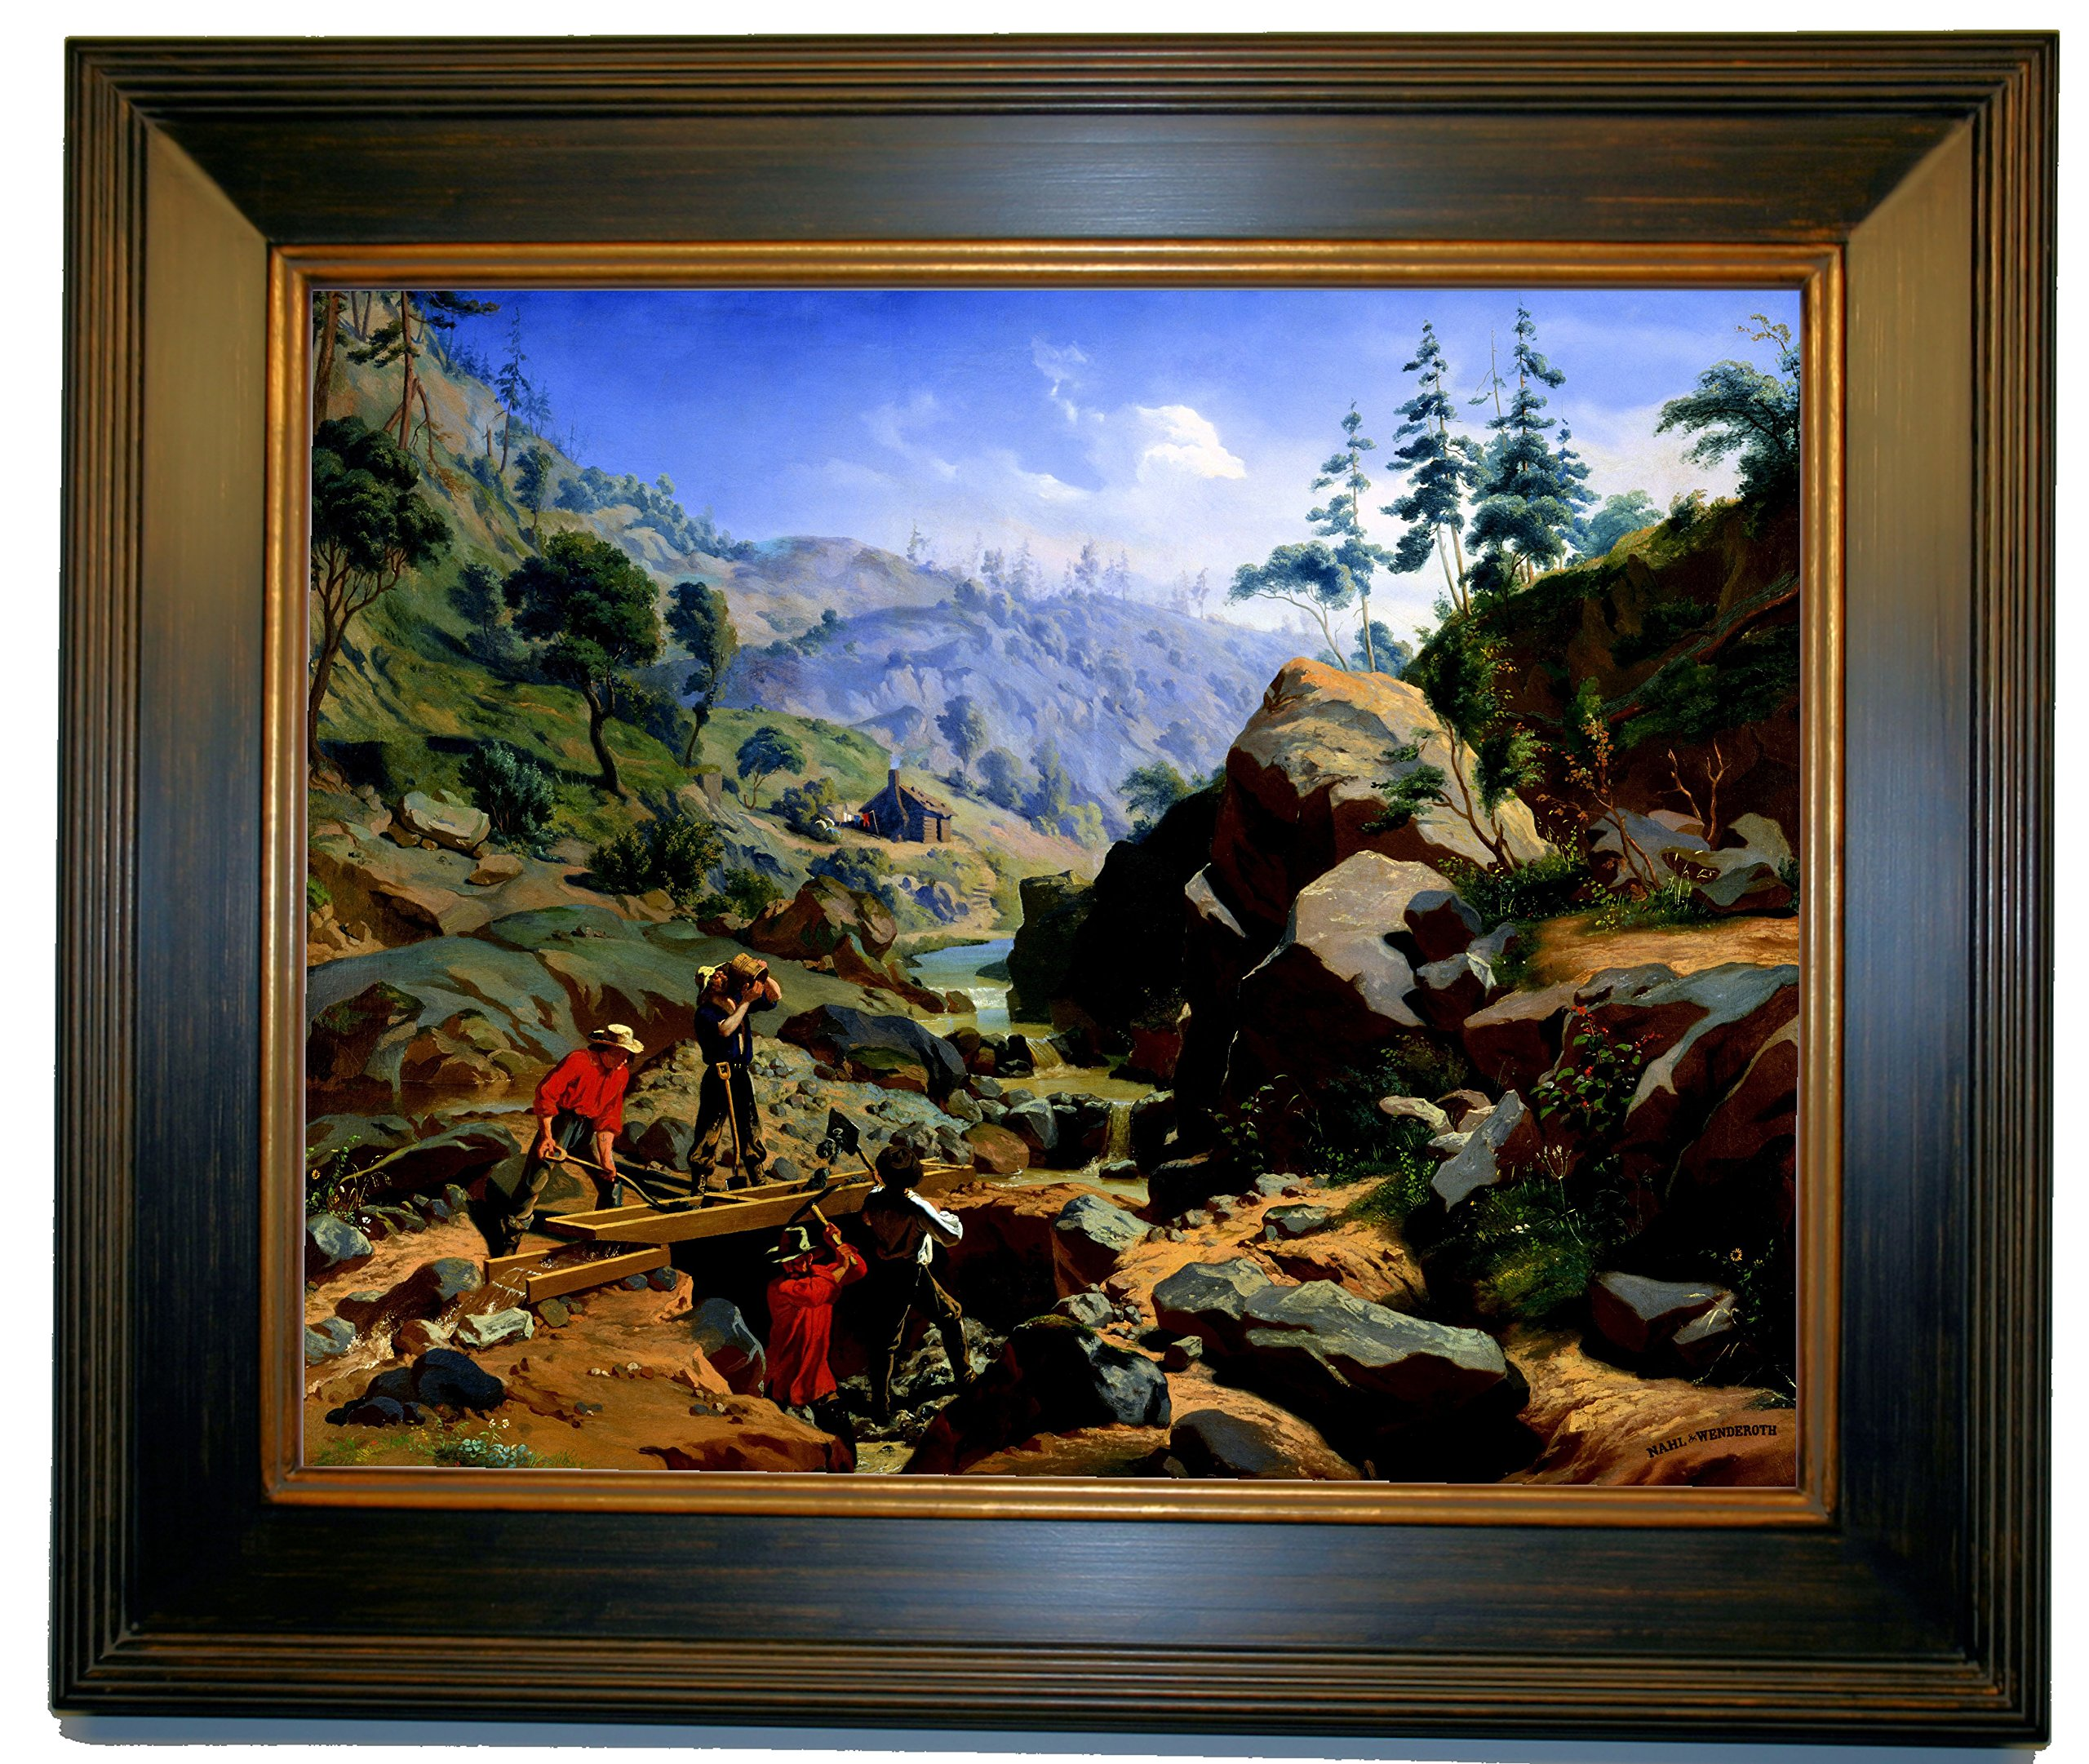 Historic Art Gallery Miners in The Sierras 1851 by Nahl. Charles Christian Framed Canvas Print - Brown with Gold Gallery - 16x20 by Historic Art Gallery